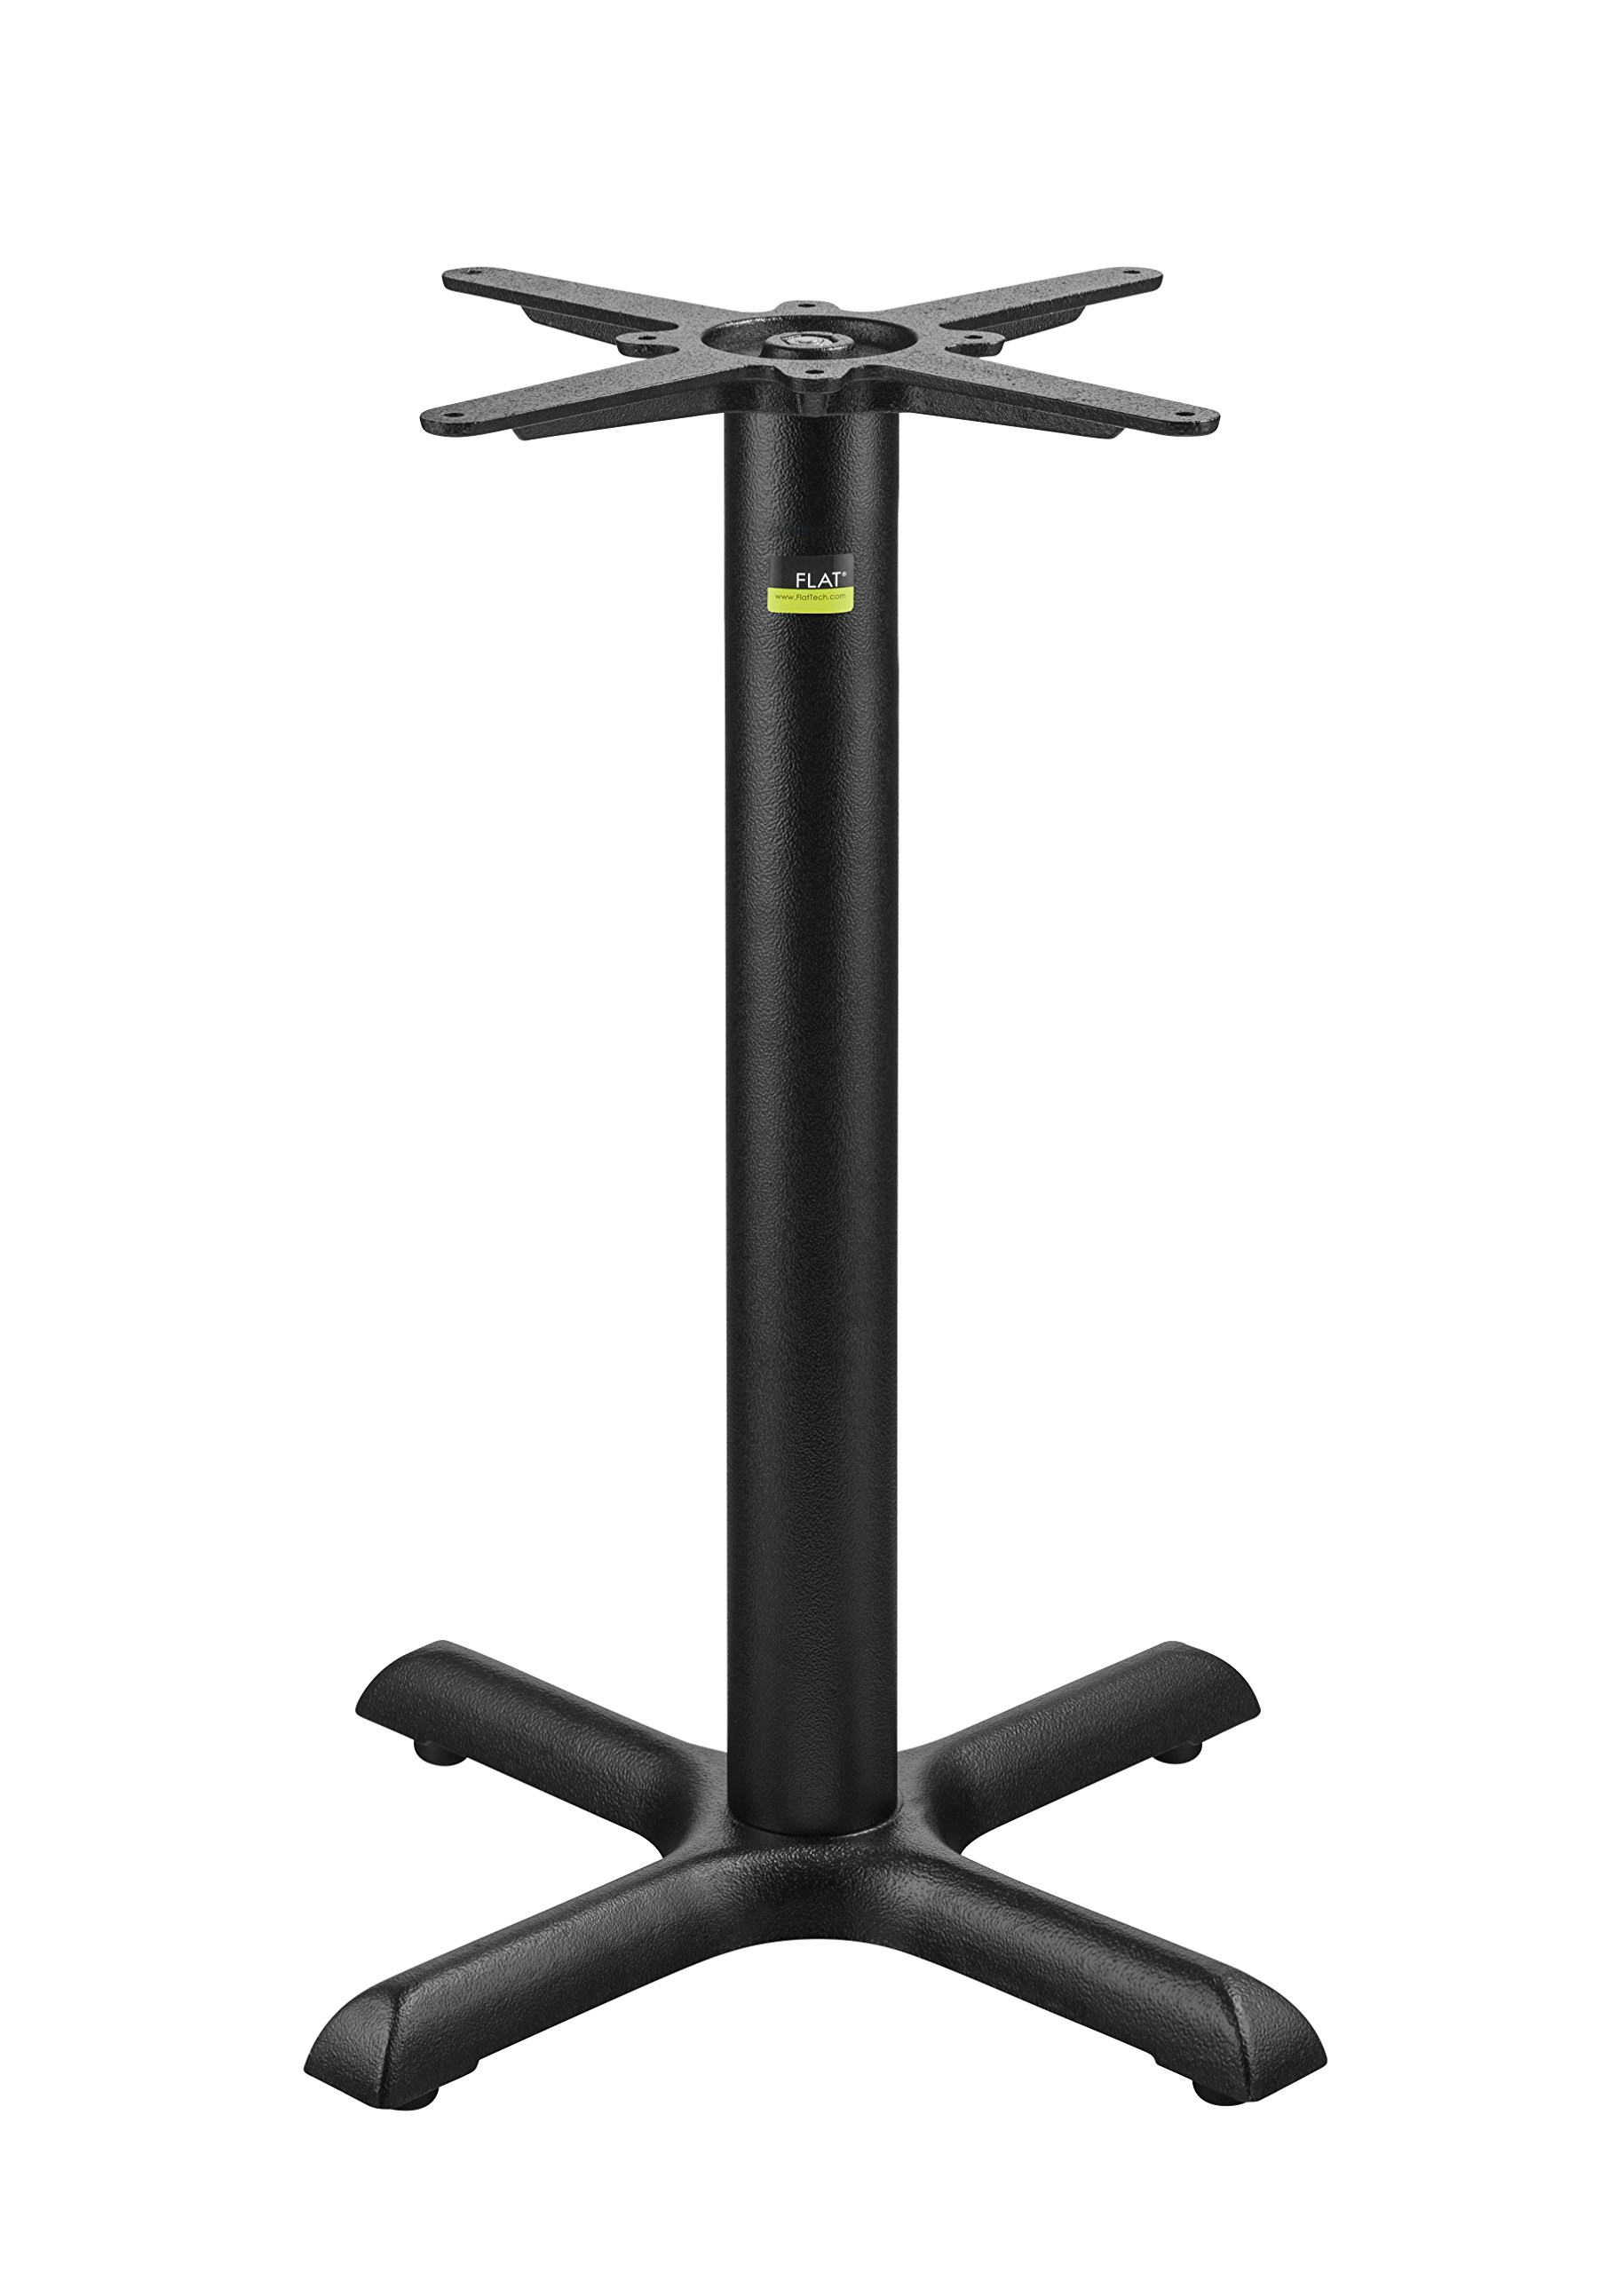 FLAT Self-Stabilizing KX22 (22''), Cast iron, Dining Height Table Base